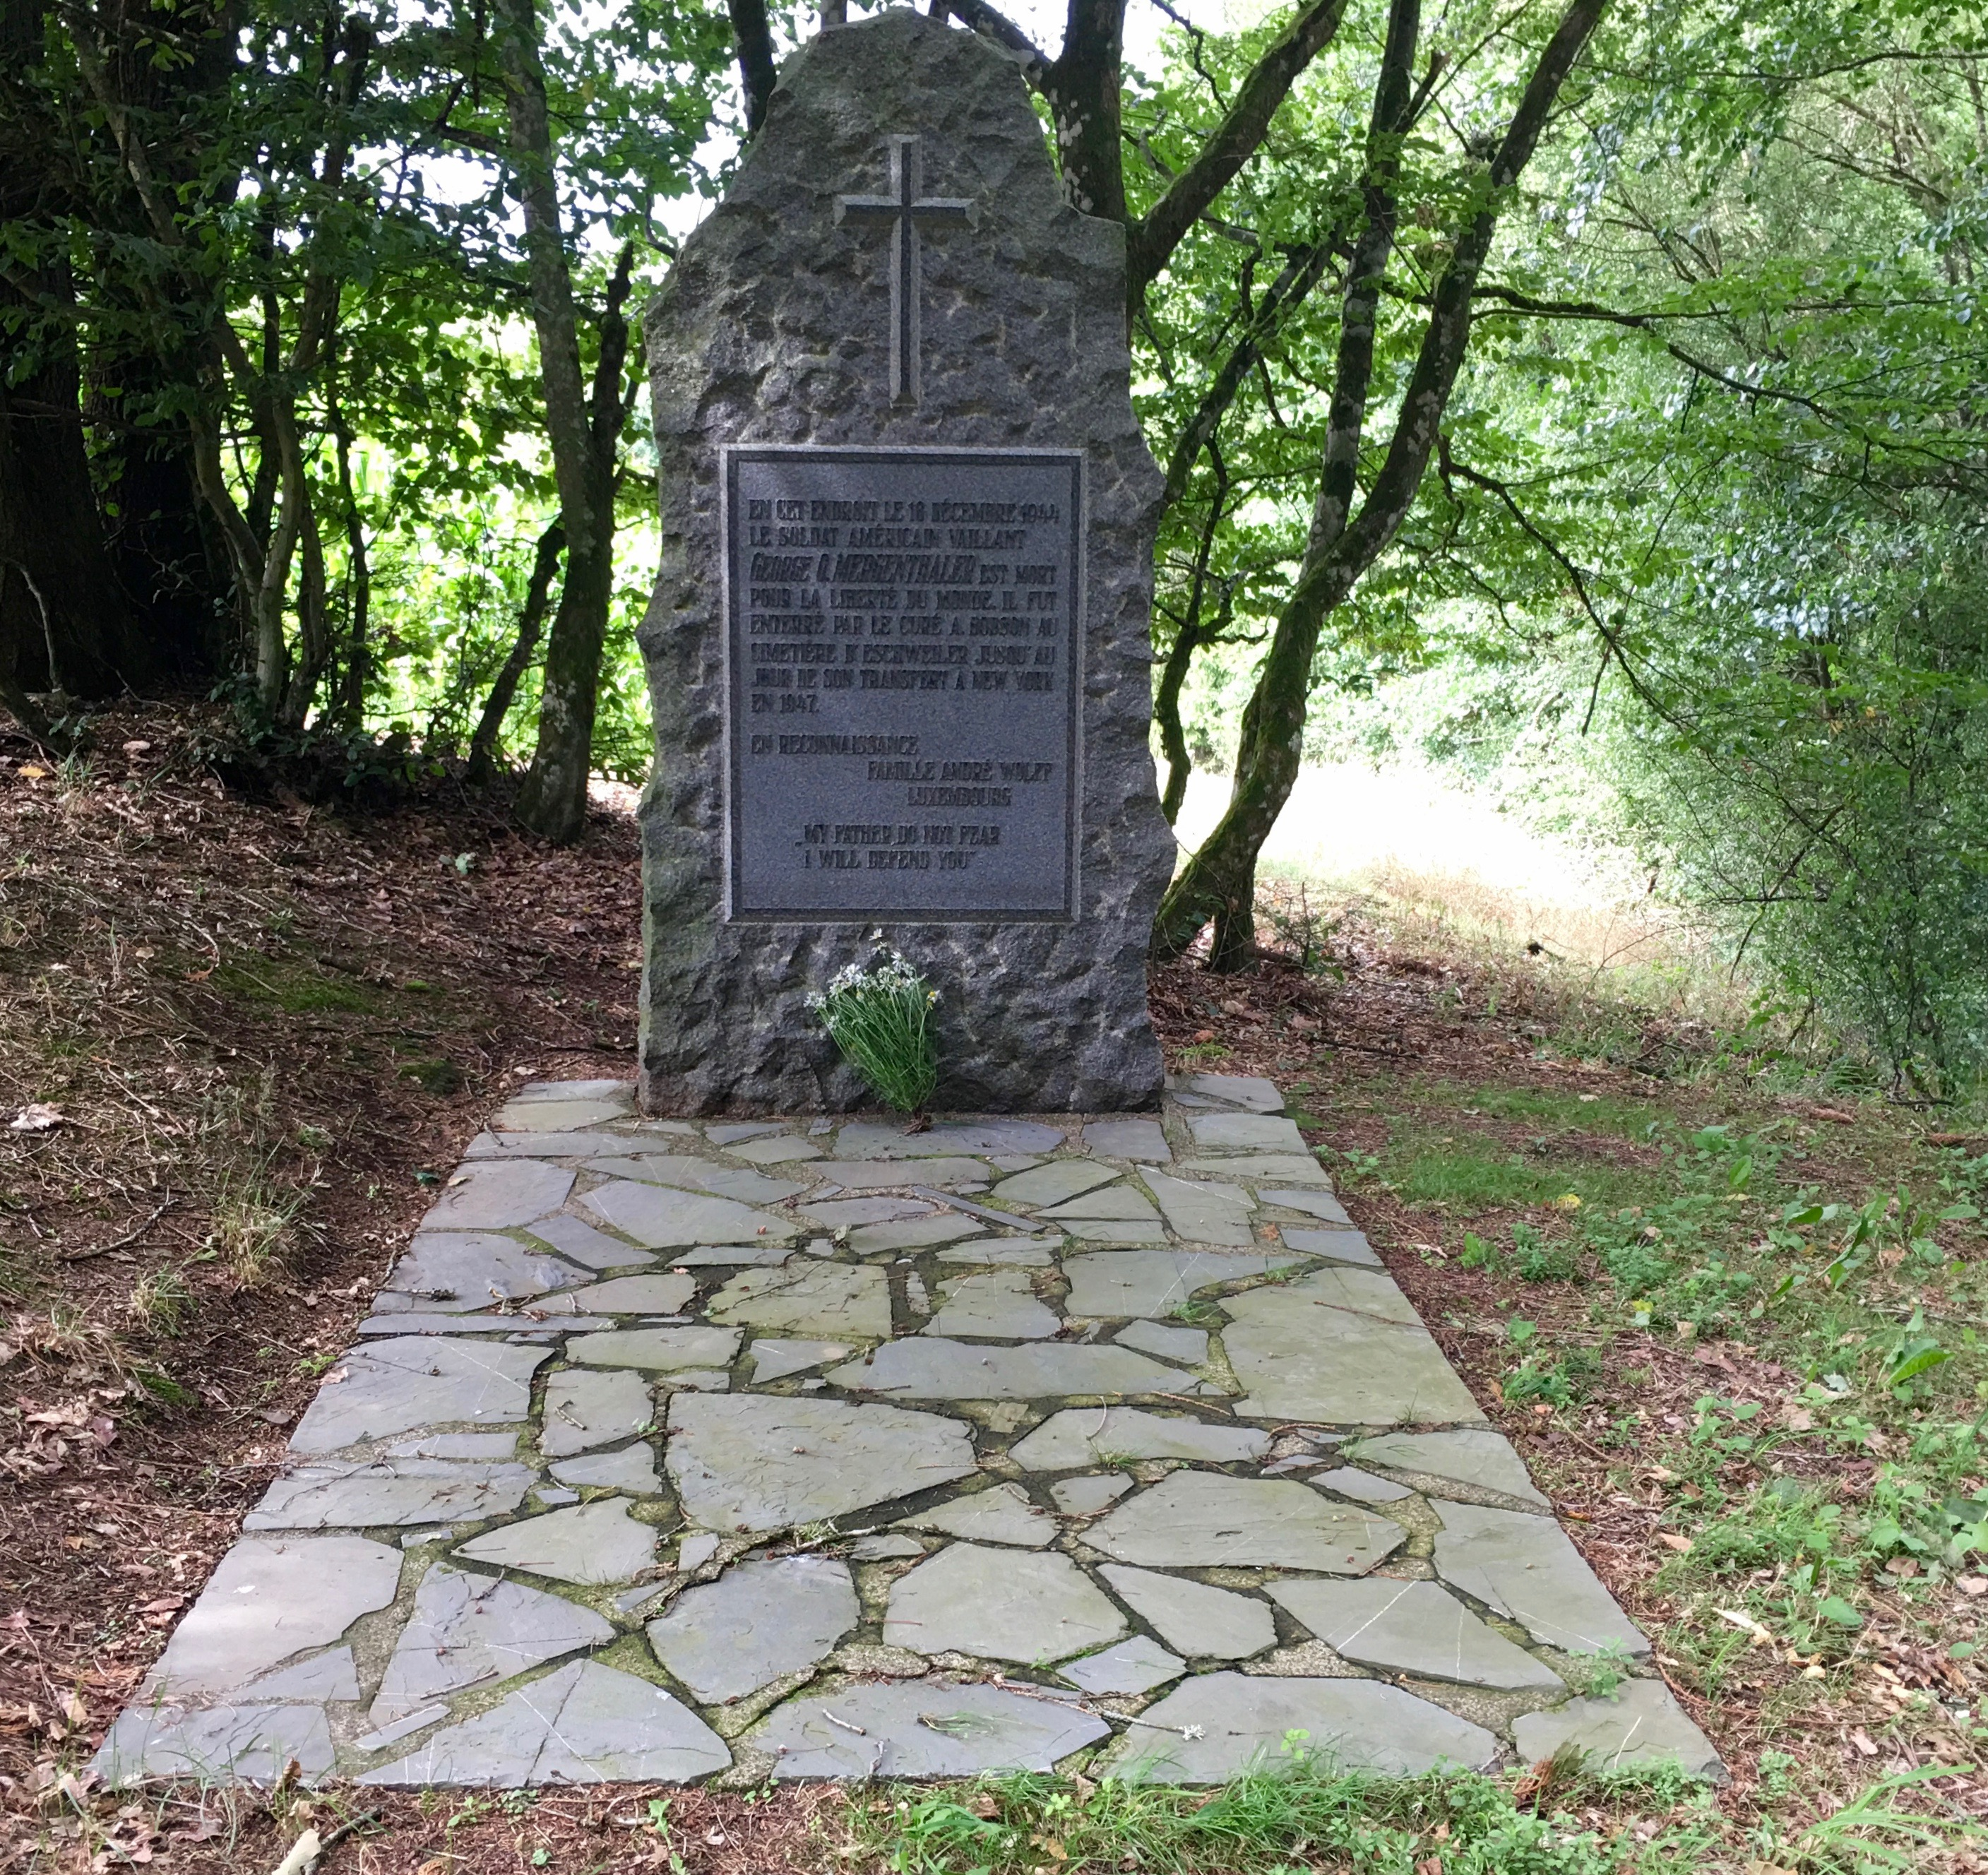 Mergenthaler roadside monument